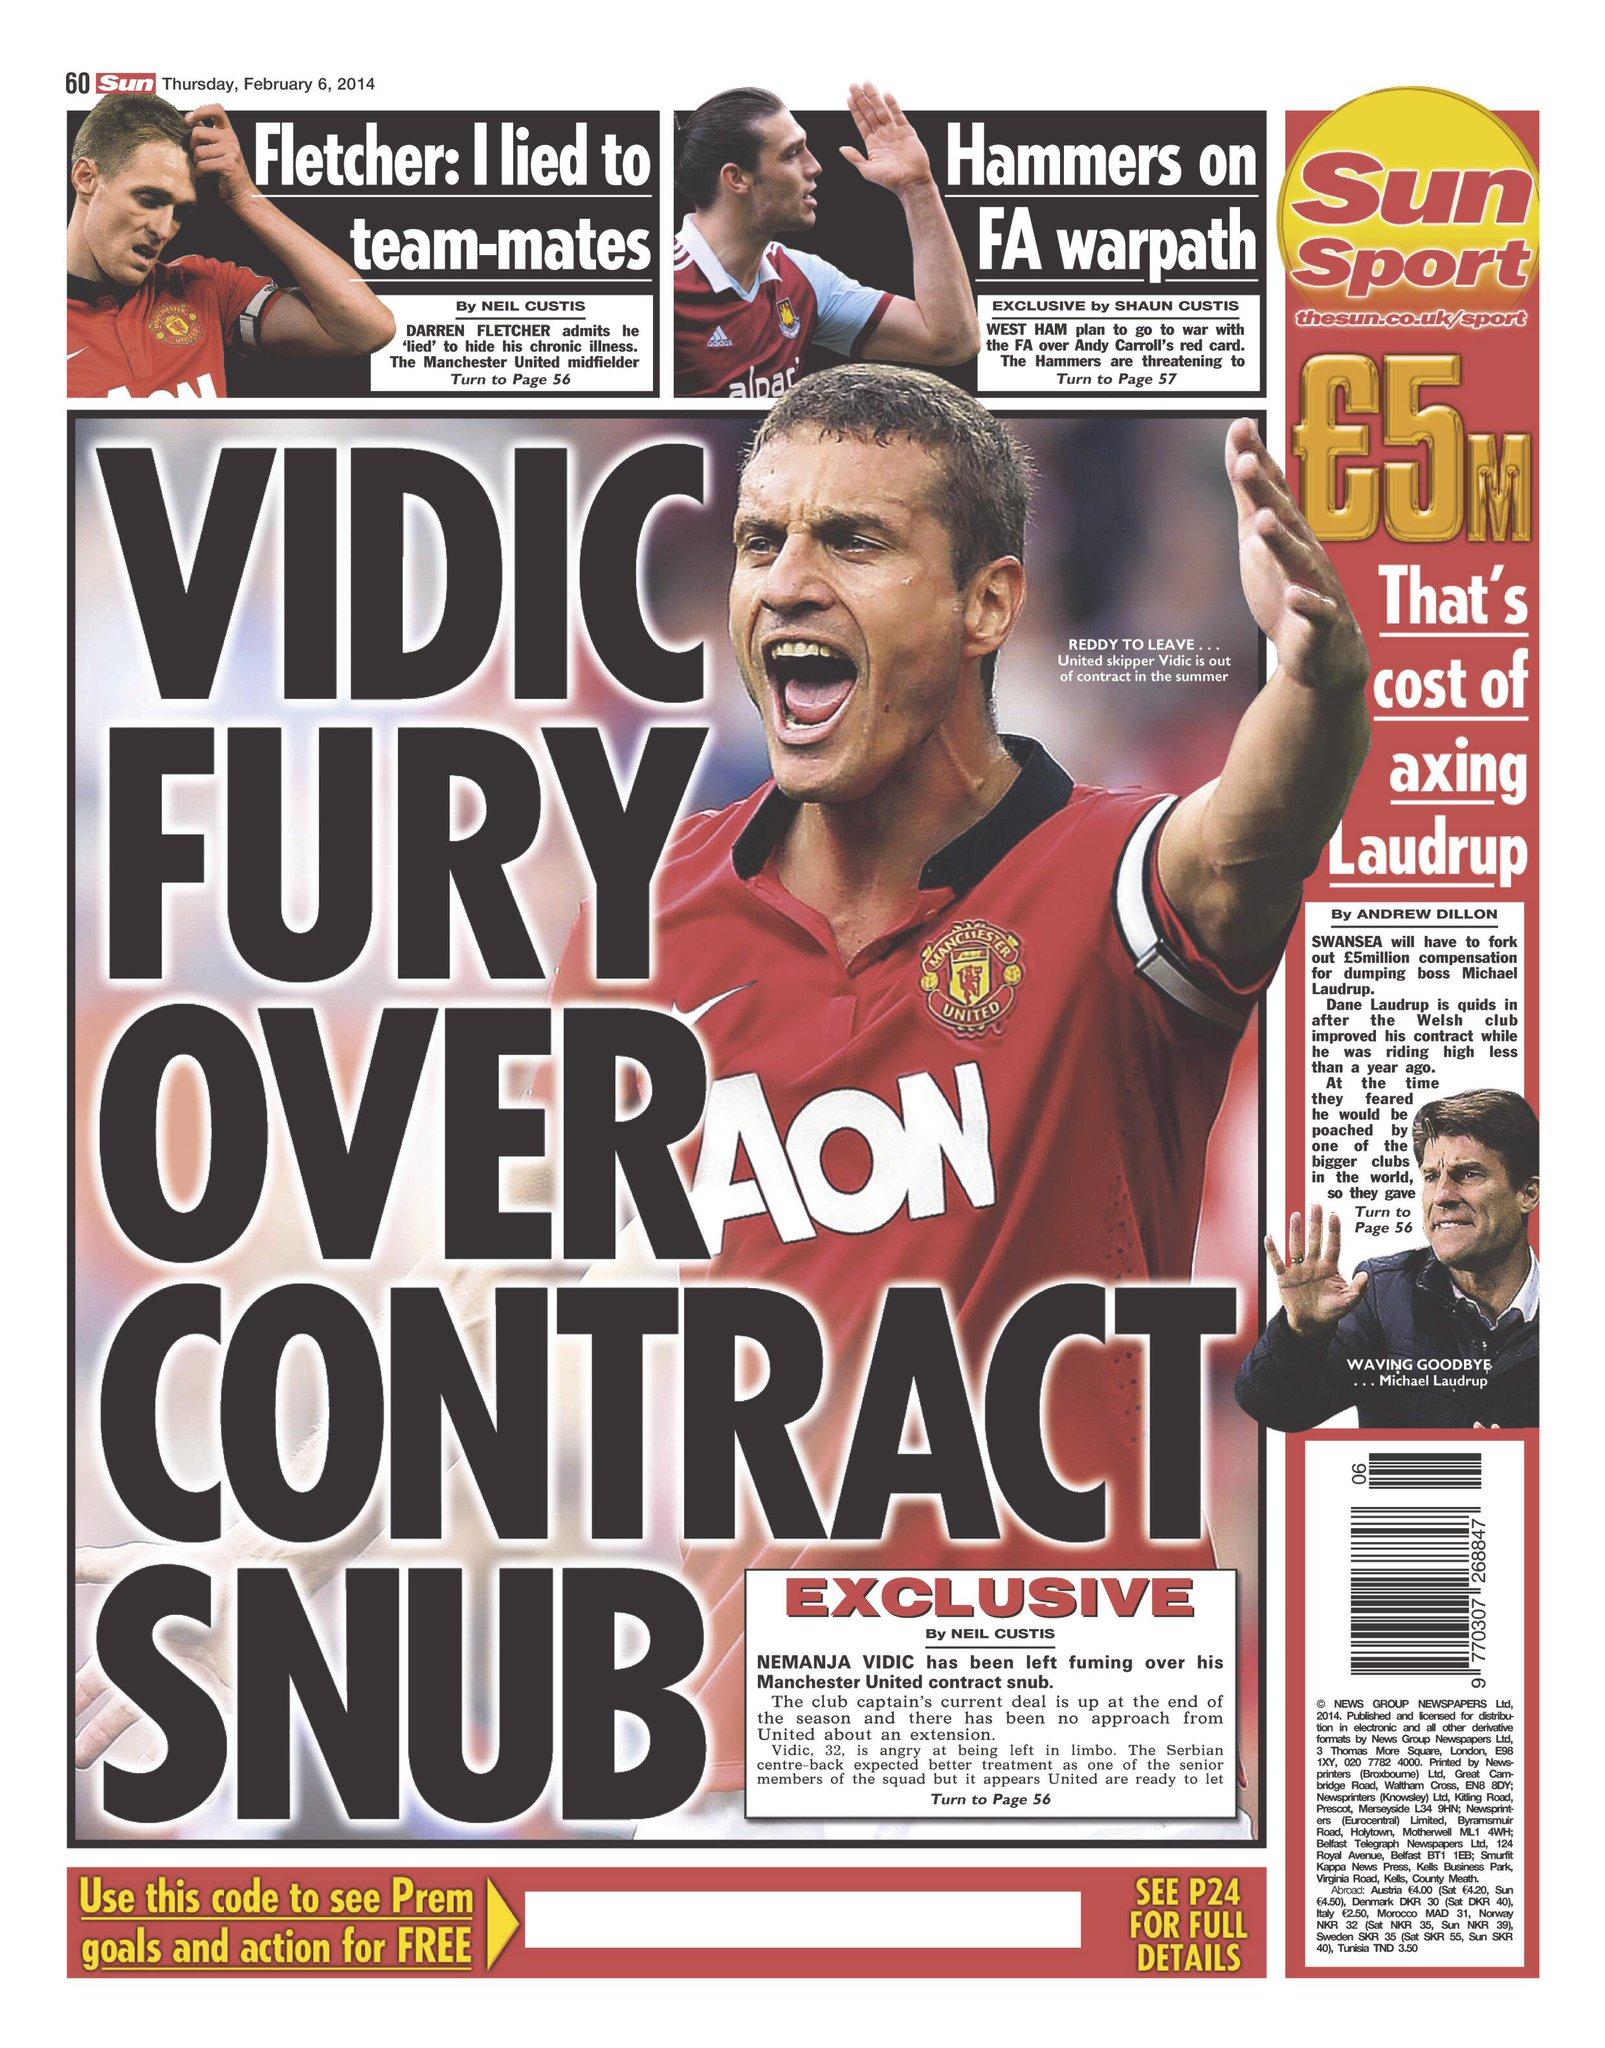 Nemanja Vidic is furious with Man United for not offering him a new deal, Serb heading to Serie A [Sun]